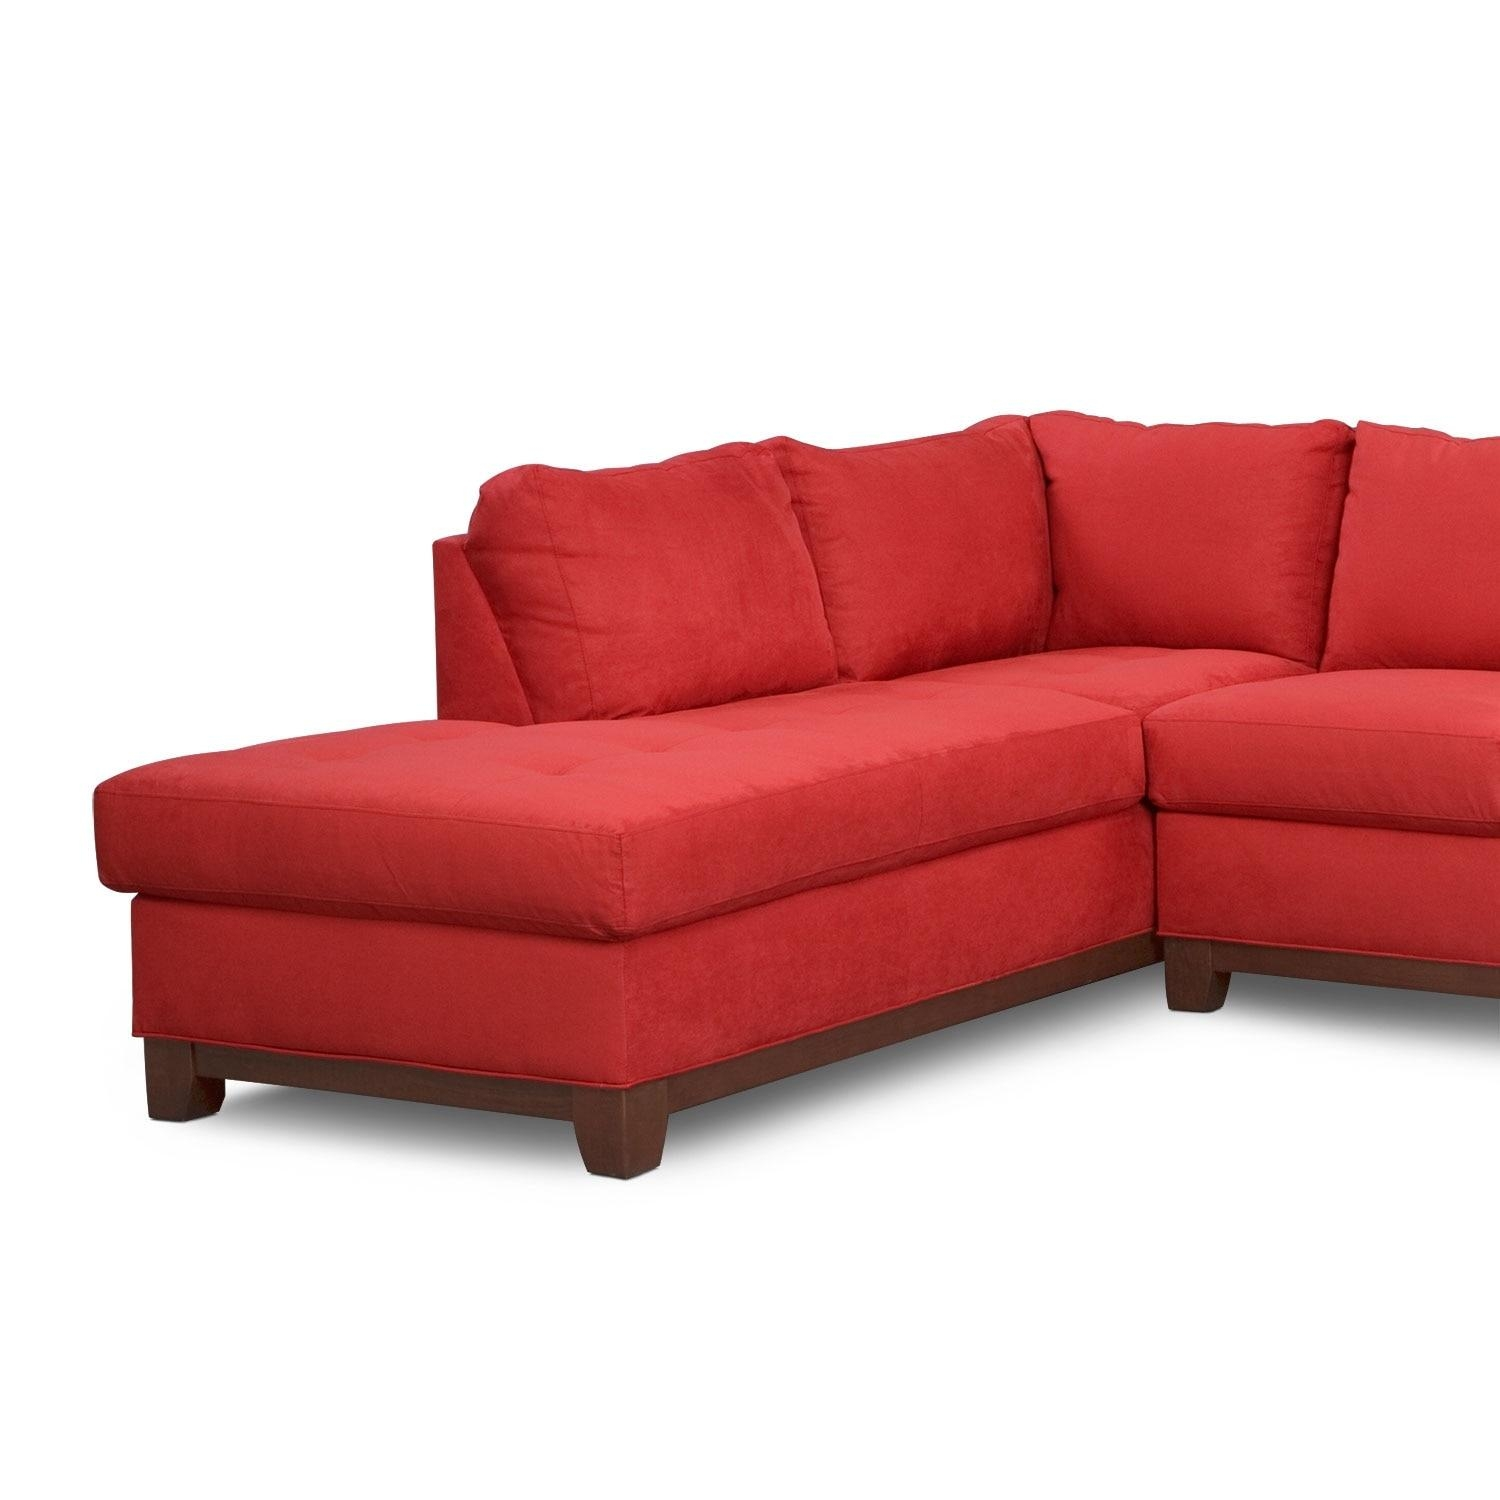 Soho 2 Piece Sectional With Left Facing Chaise – Red | Value City Within Sectional With 2 Chaises (Image 17 of 20)